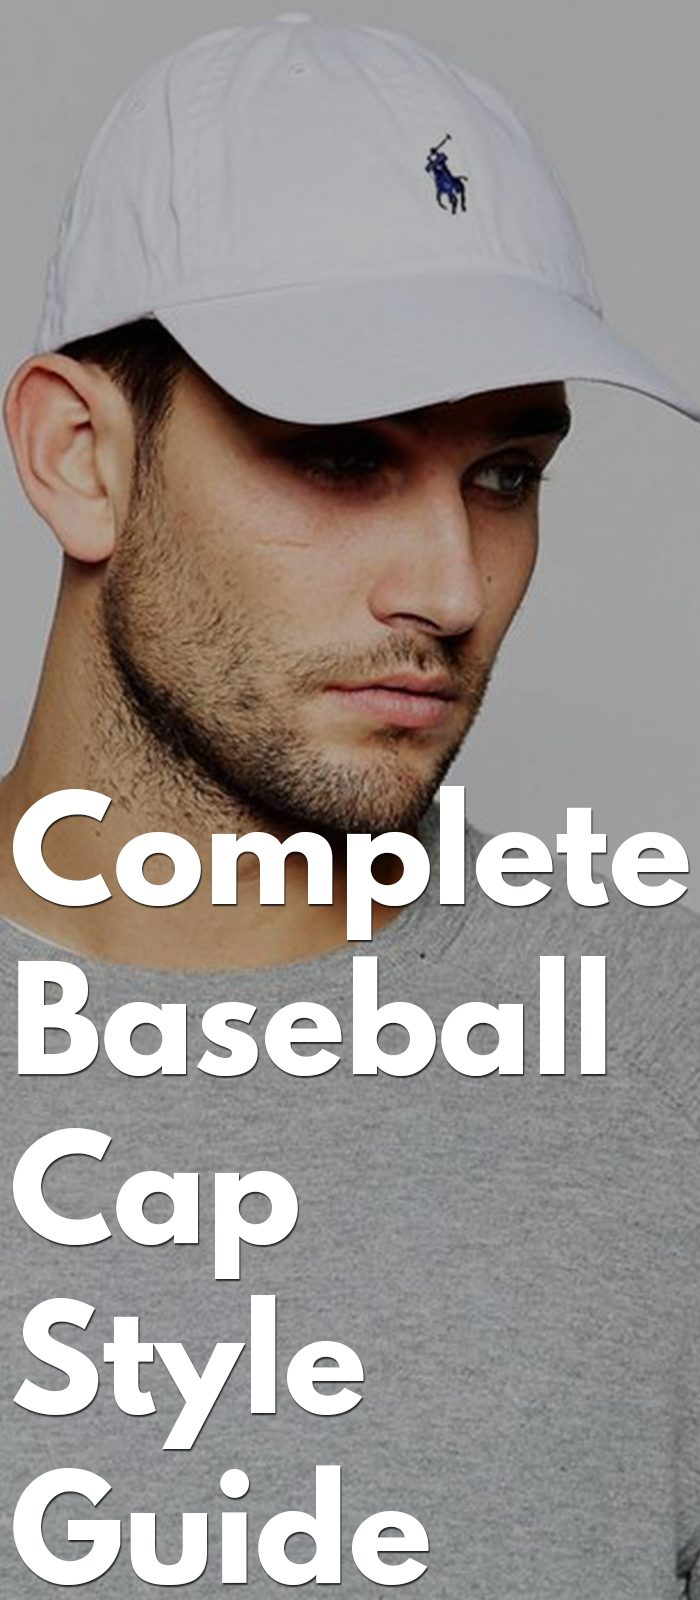 Complete Baseball Cap Style Guide for 2018